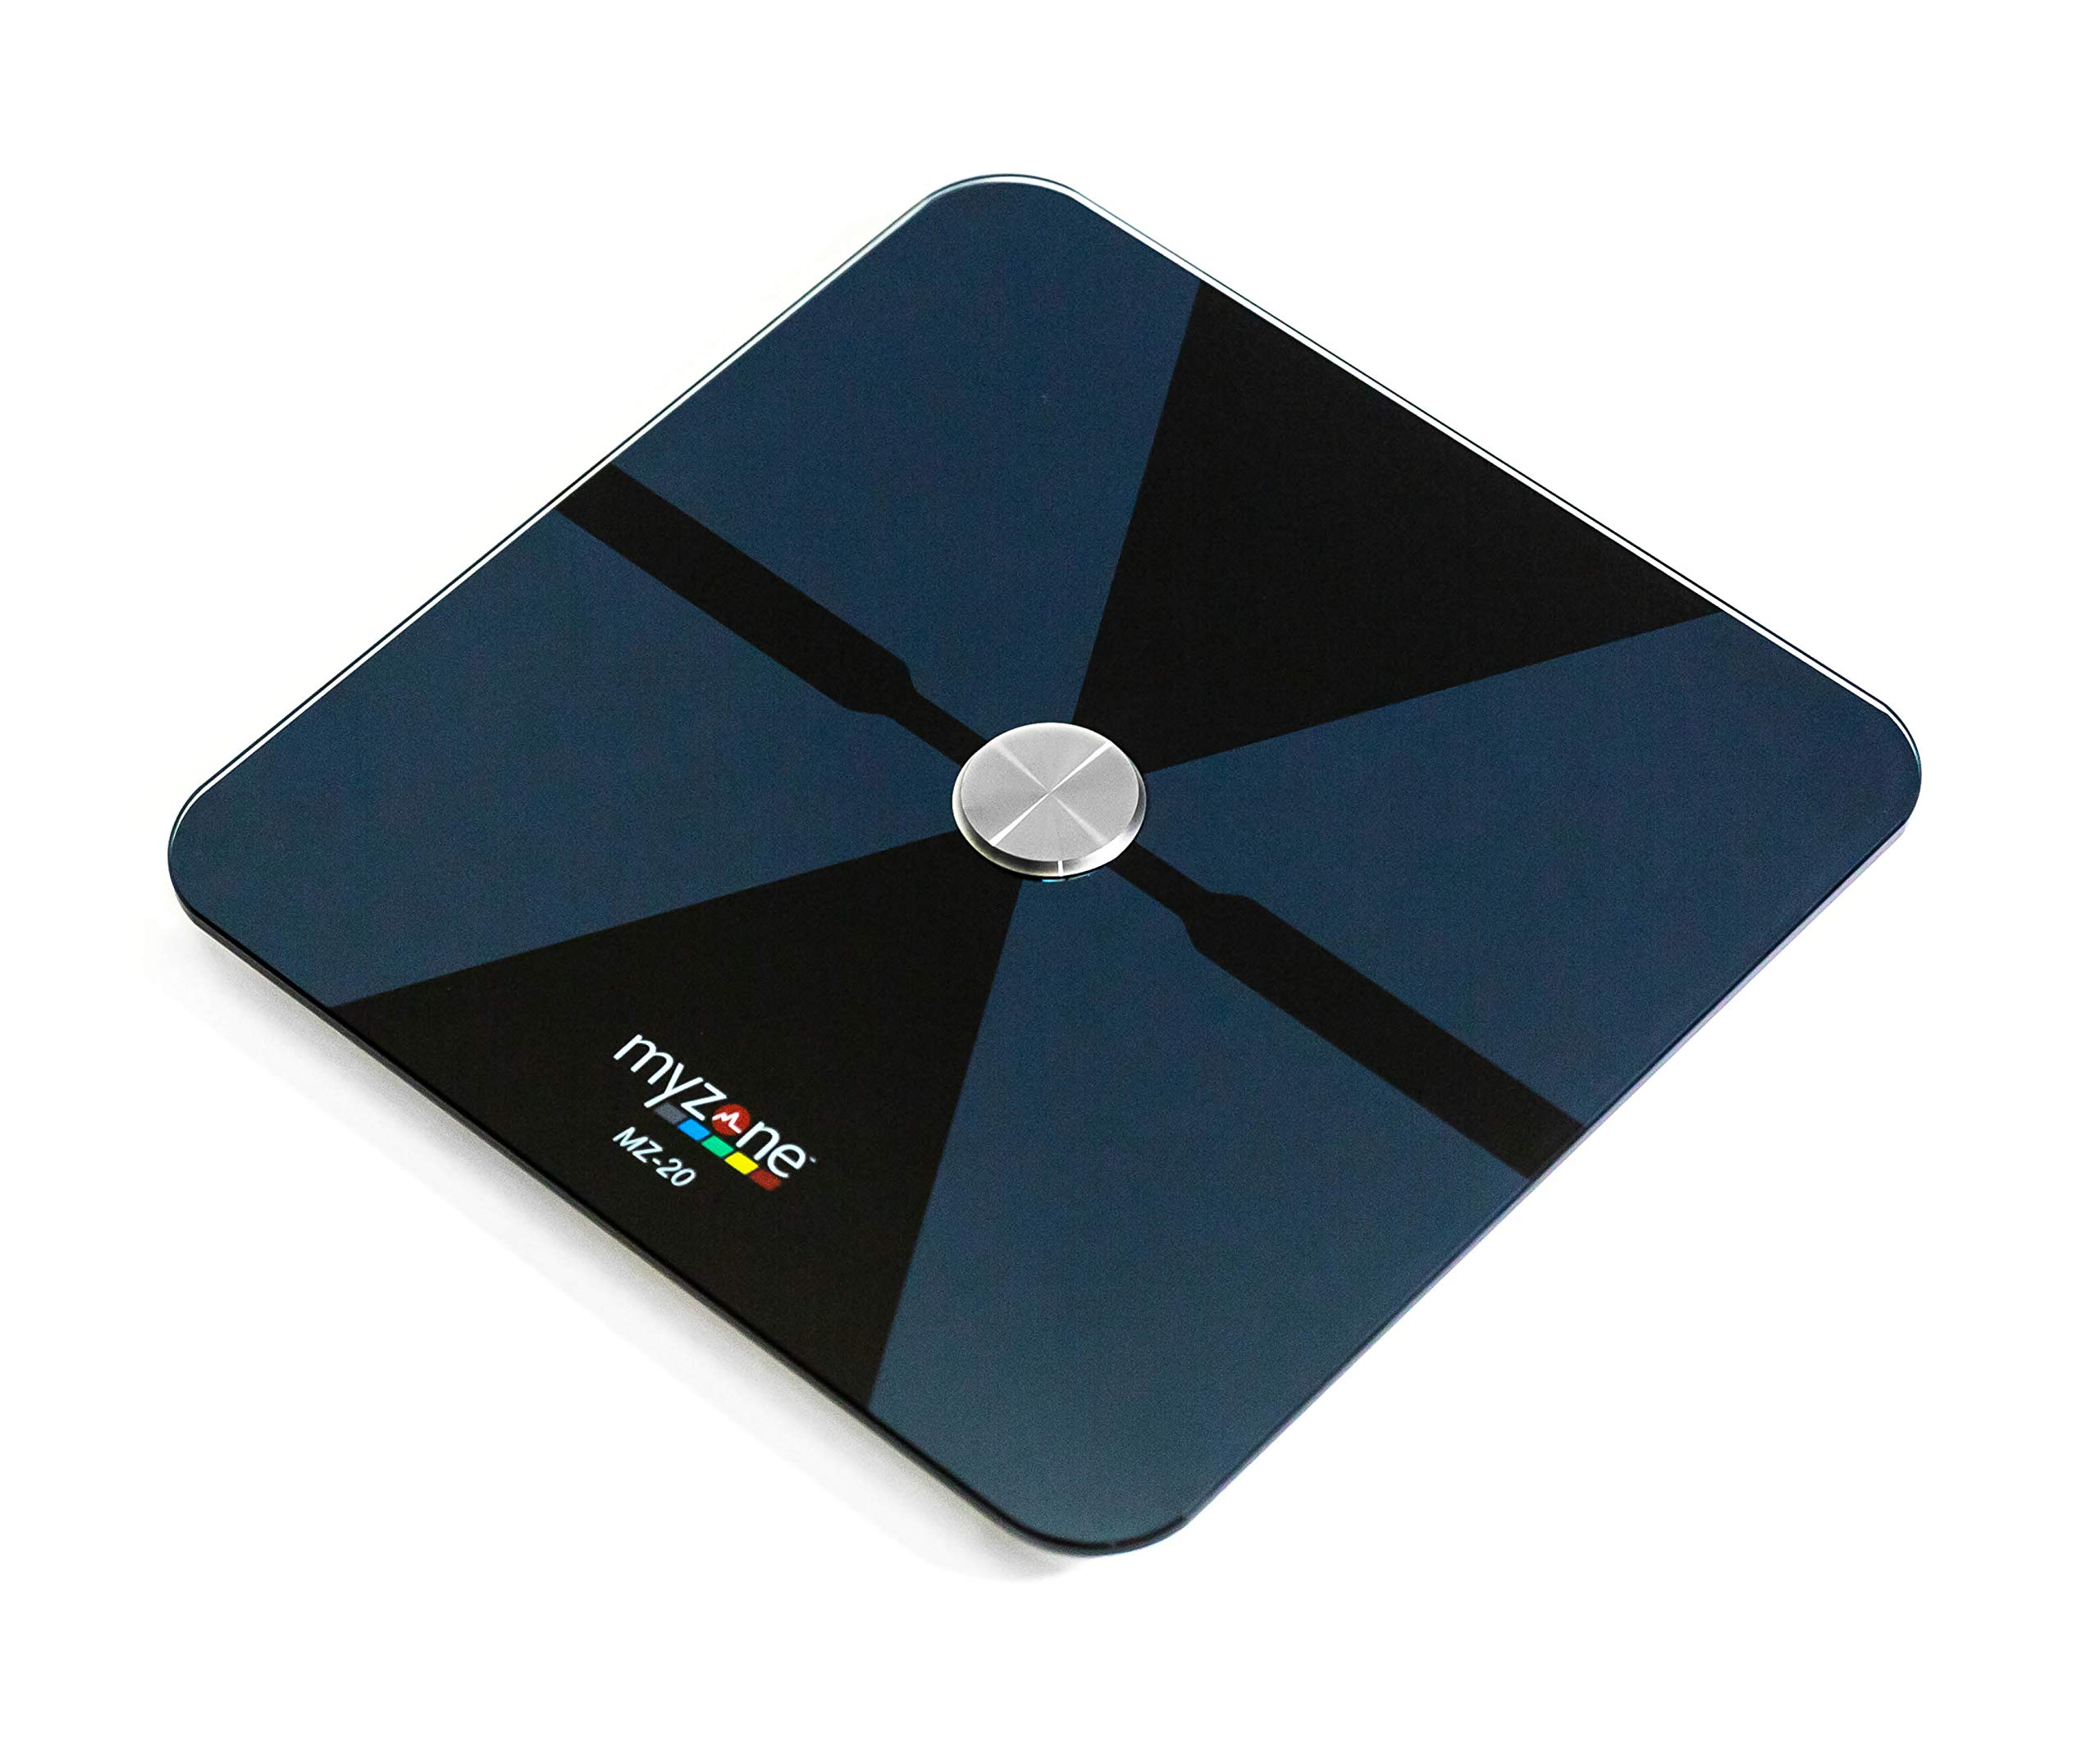 MYZONE MZ-20 Home Scale (Black) by Myzone (Image #3)